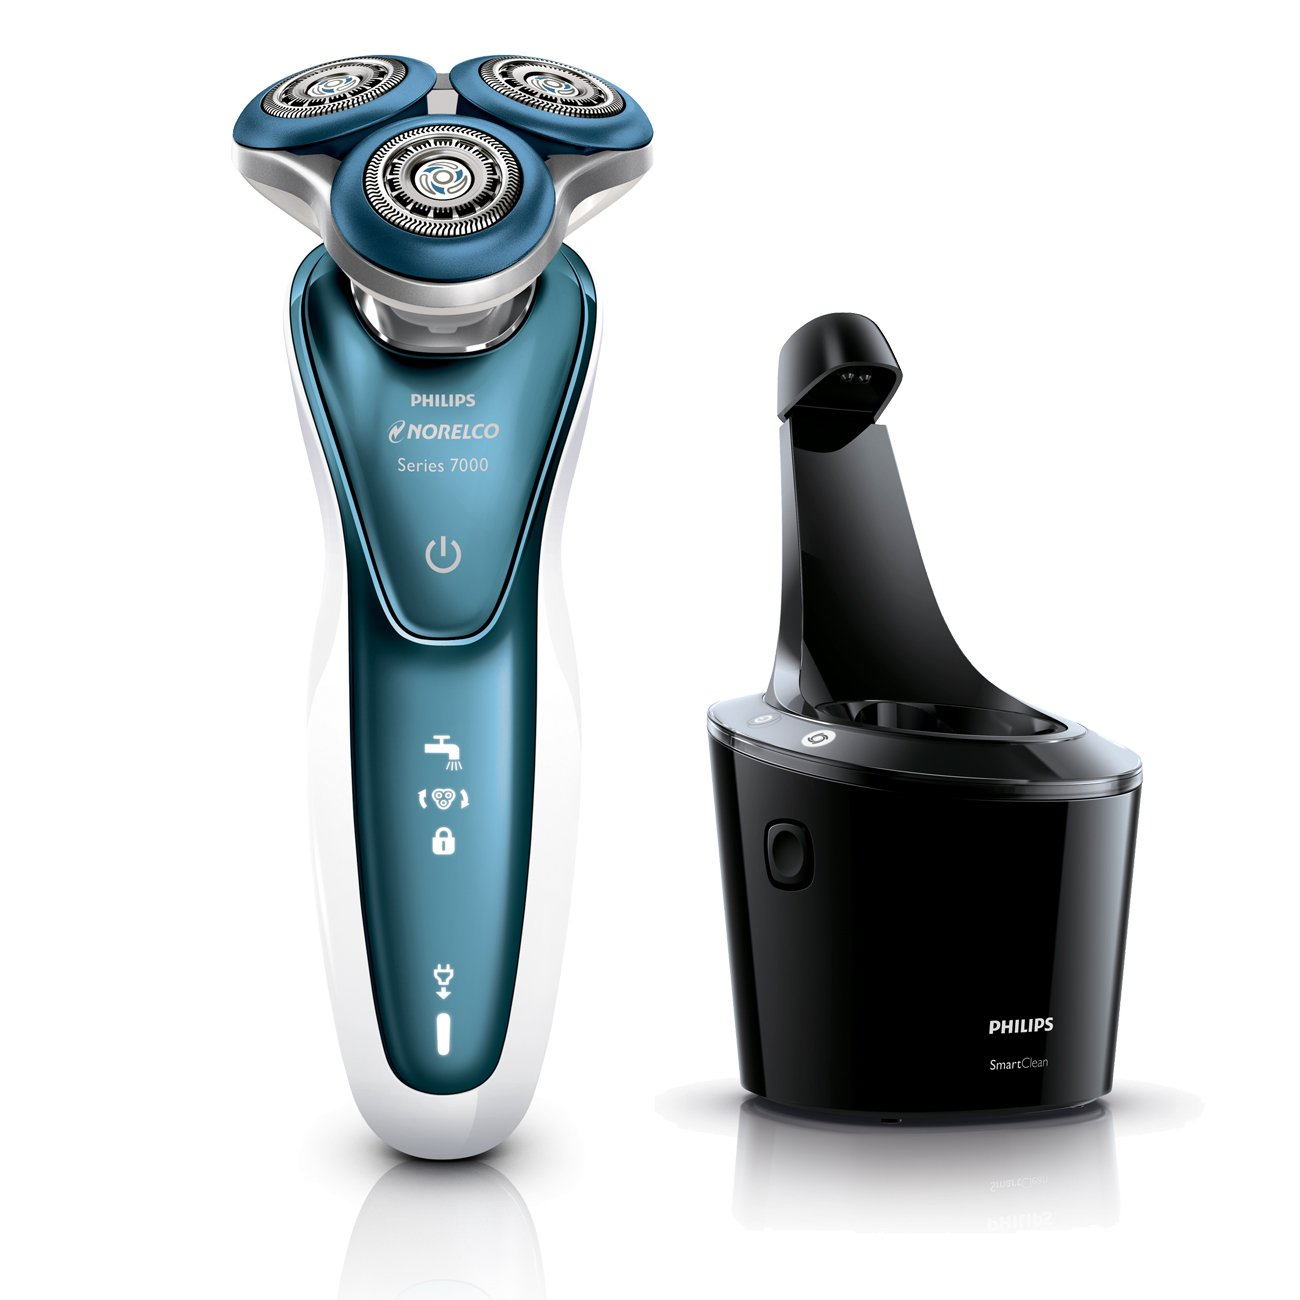 Philips Norelco Electric Shaver 7500 for Sensitive Skin